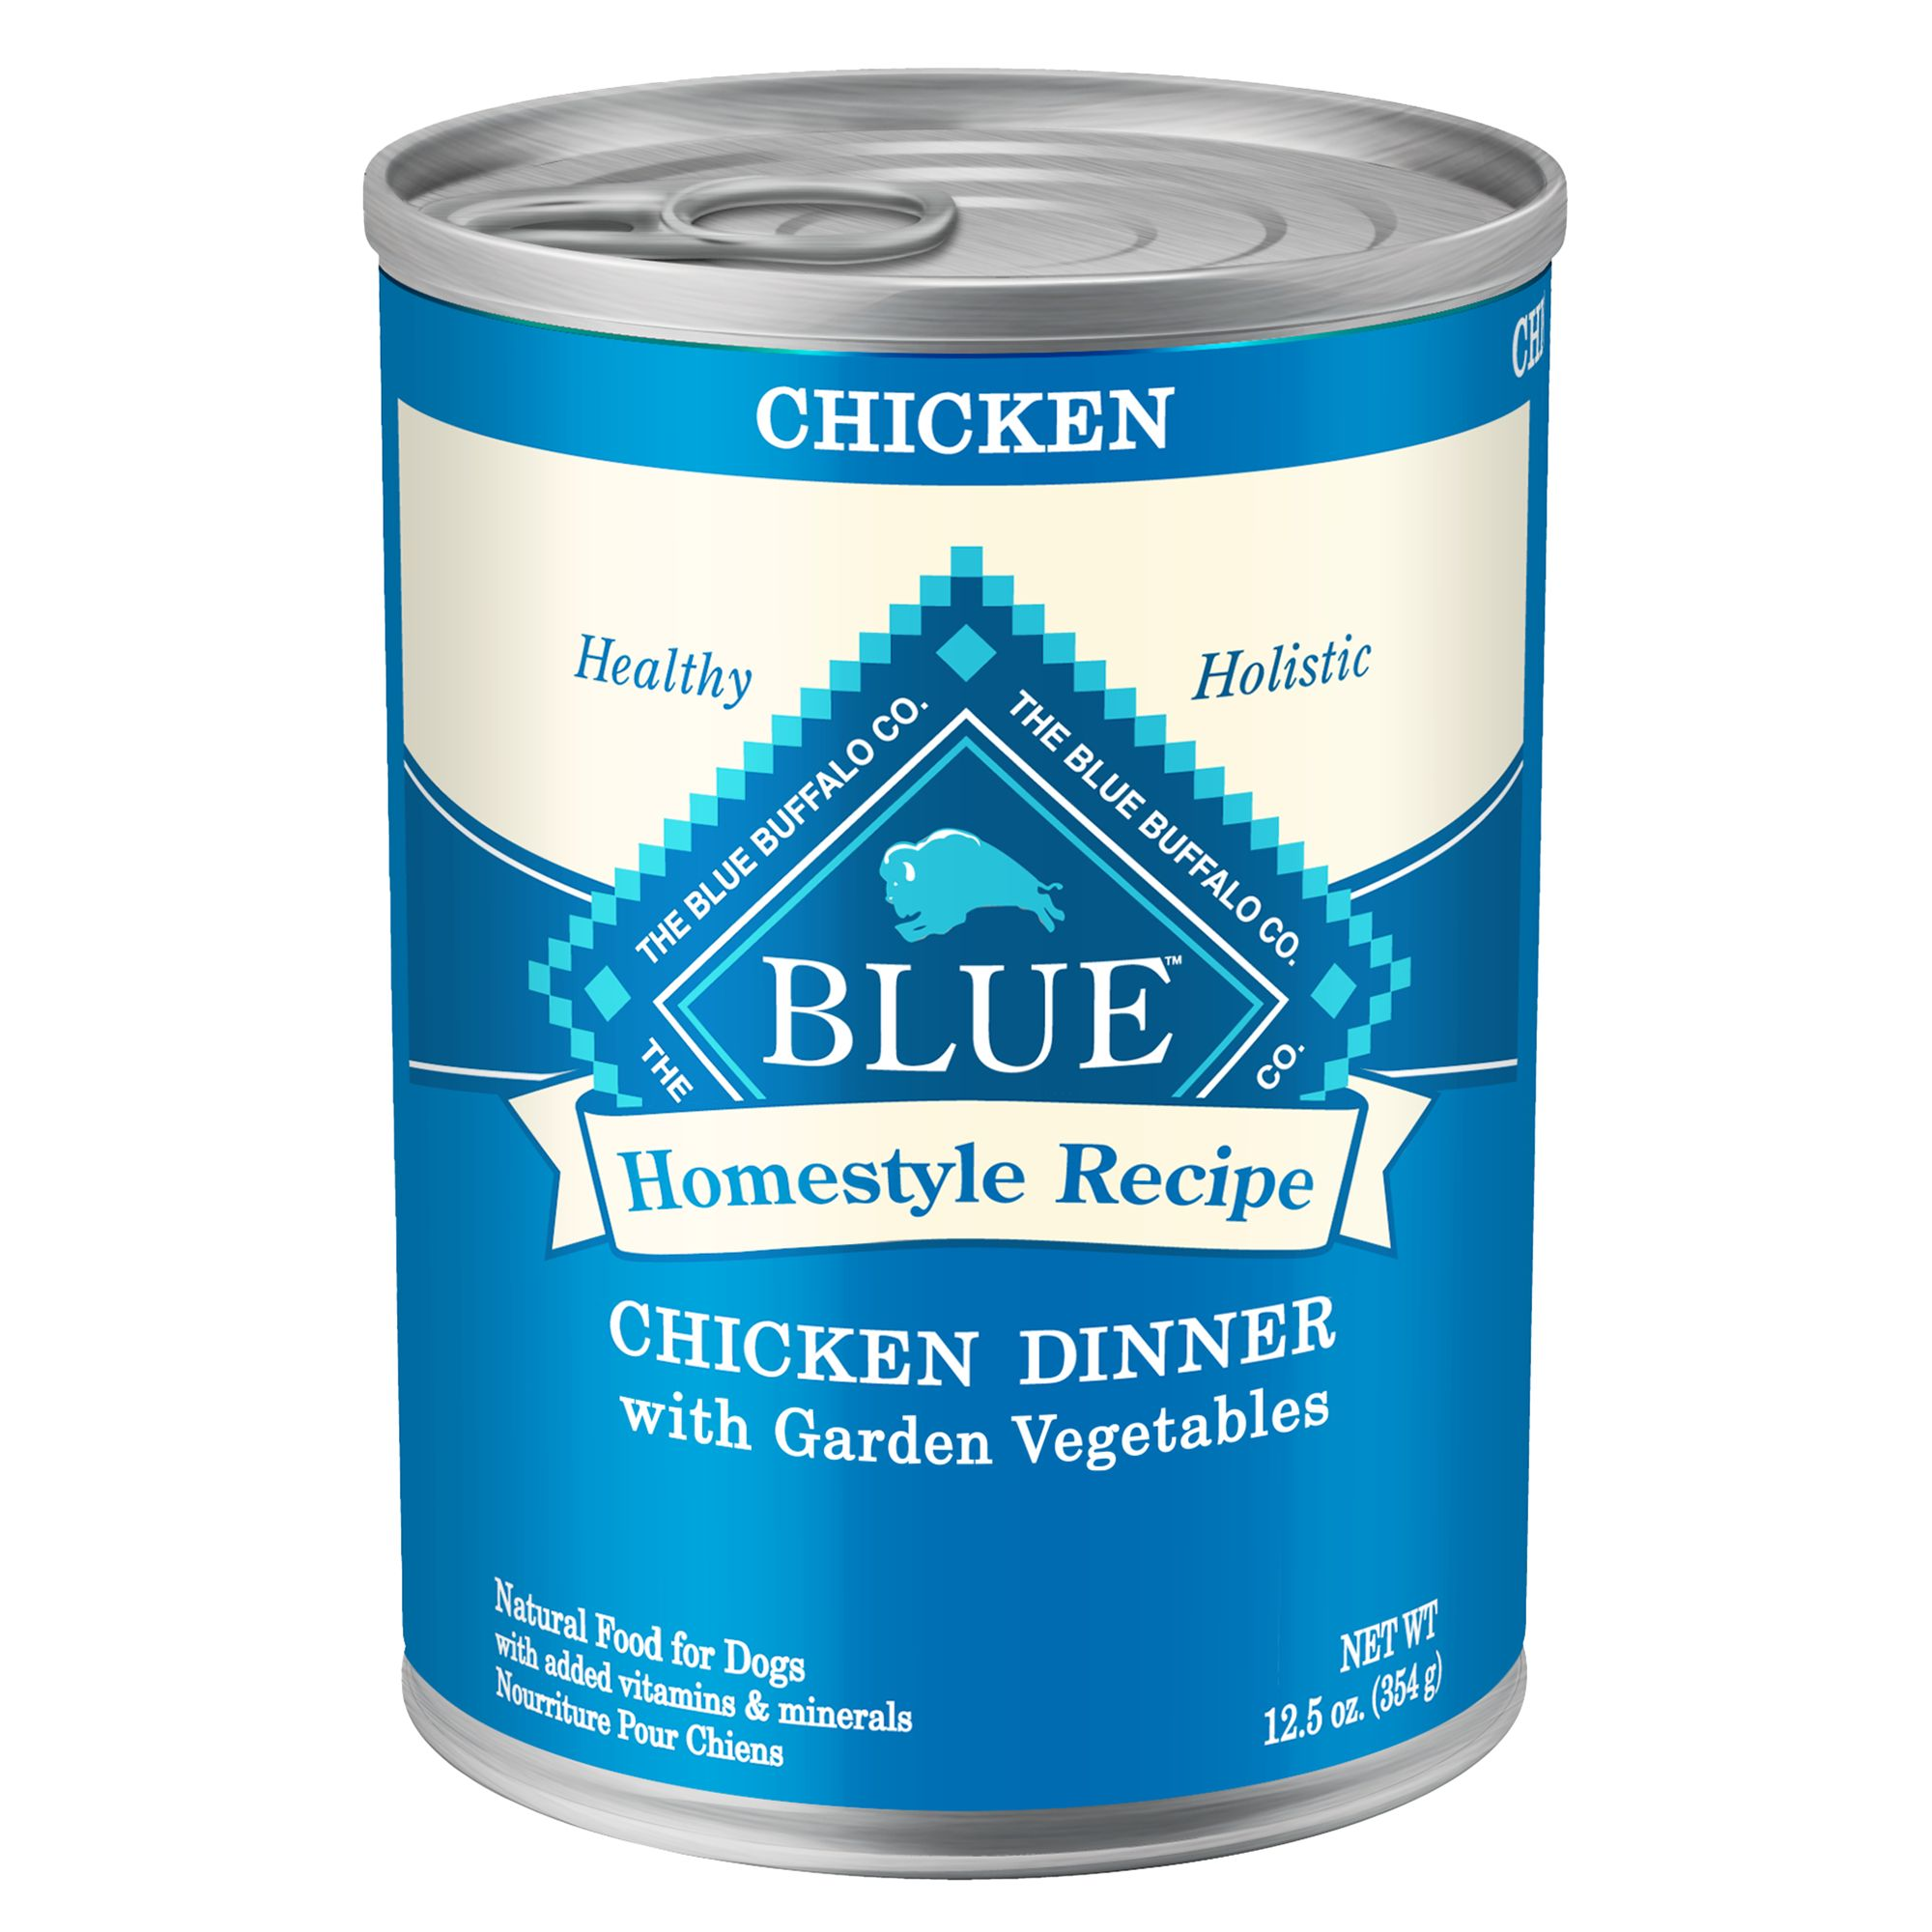 Blue Homestyle Recipe Adult Dog Food size: 12.5 Oz, Blue Buffalo, Chicken with Garden Vegetables & Brown Rice 5127107